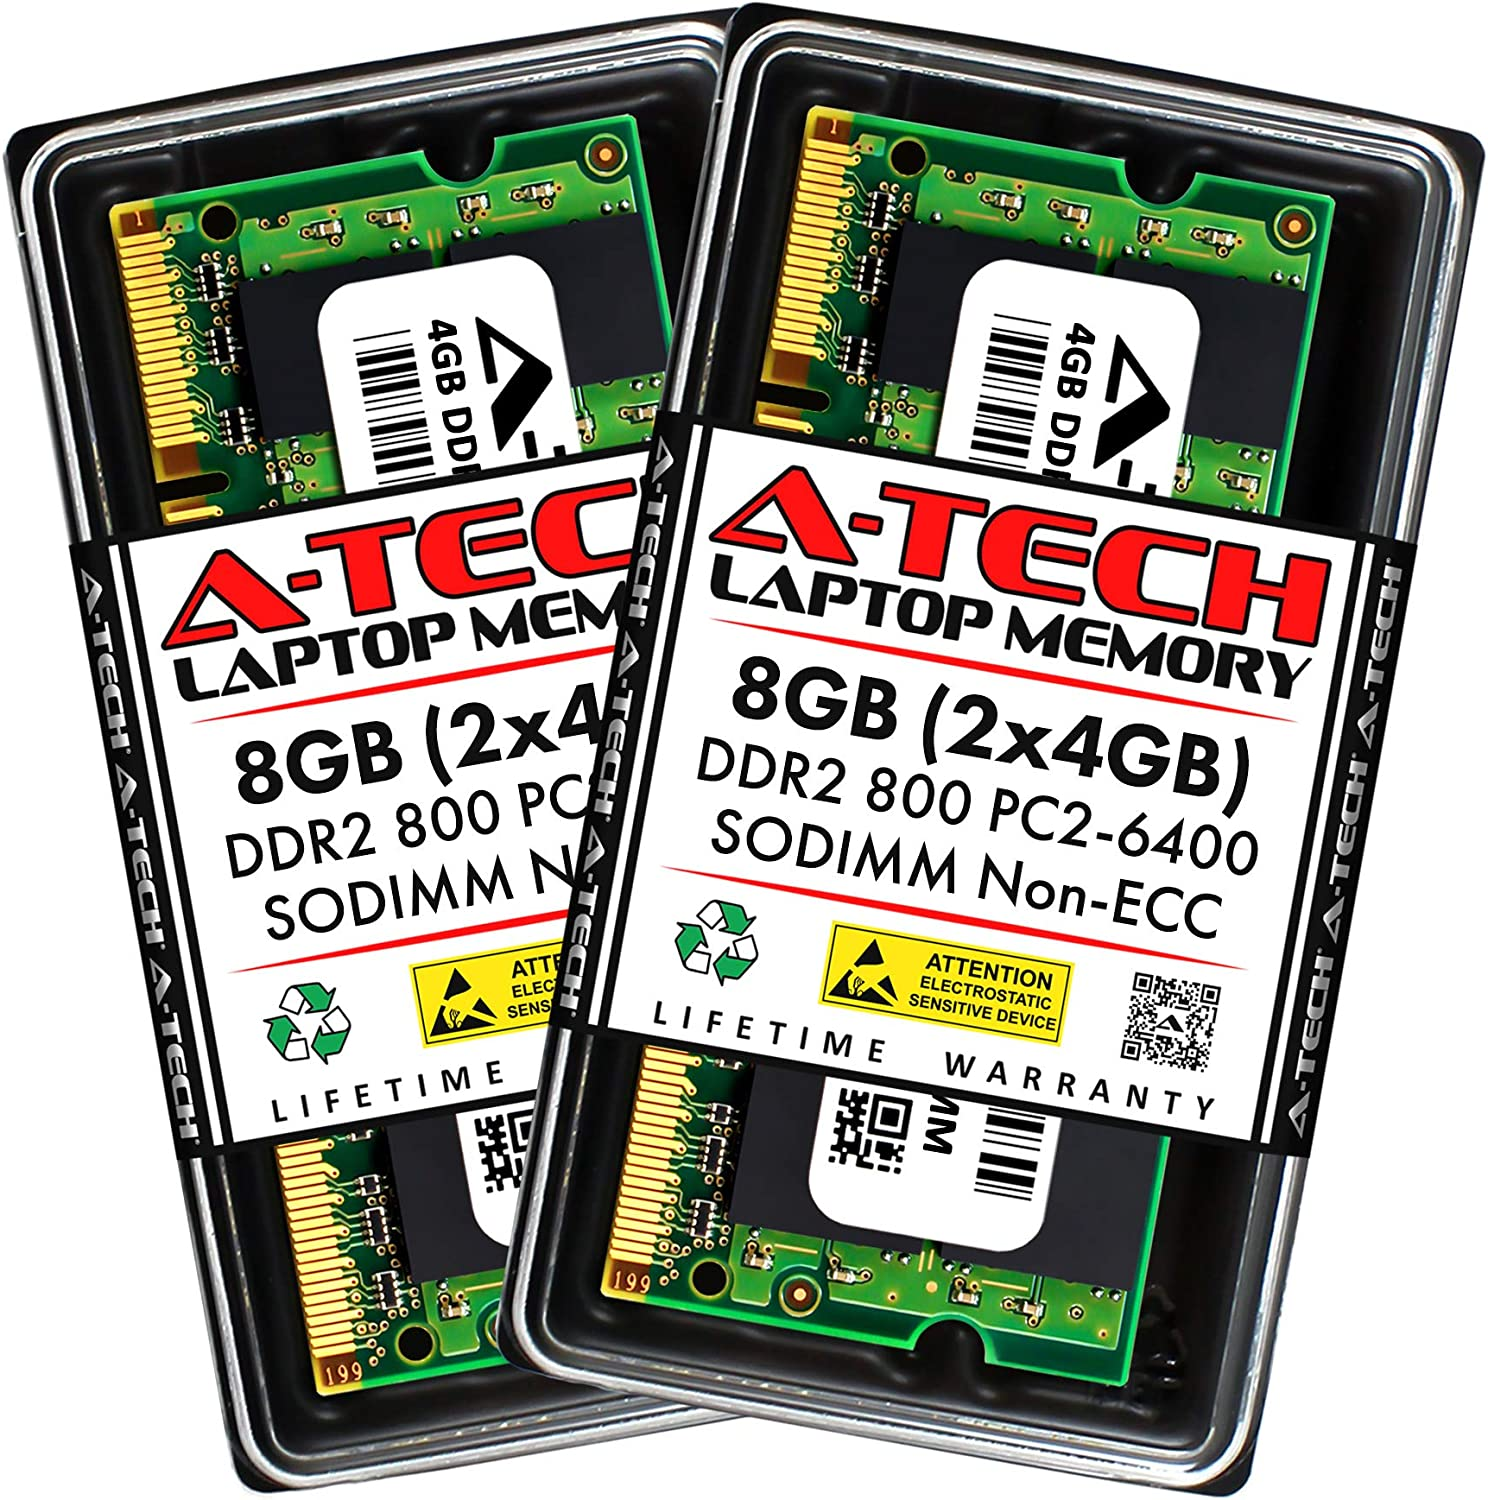 A-Tech 8GB (2x4GB) DDR2 800MHz SODIMM PC2-6400 1.8V CL6 200-Pin Non-ECC Unbuffered Laptop RAM Memory Upgrade Kit